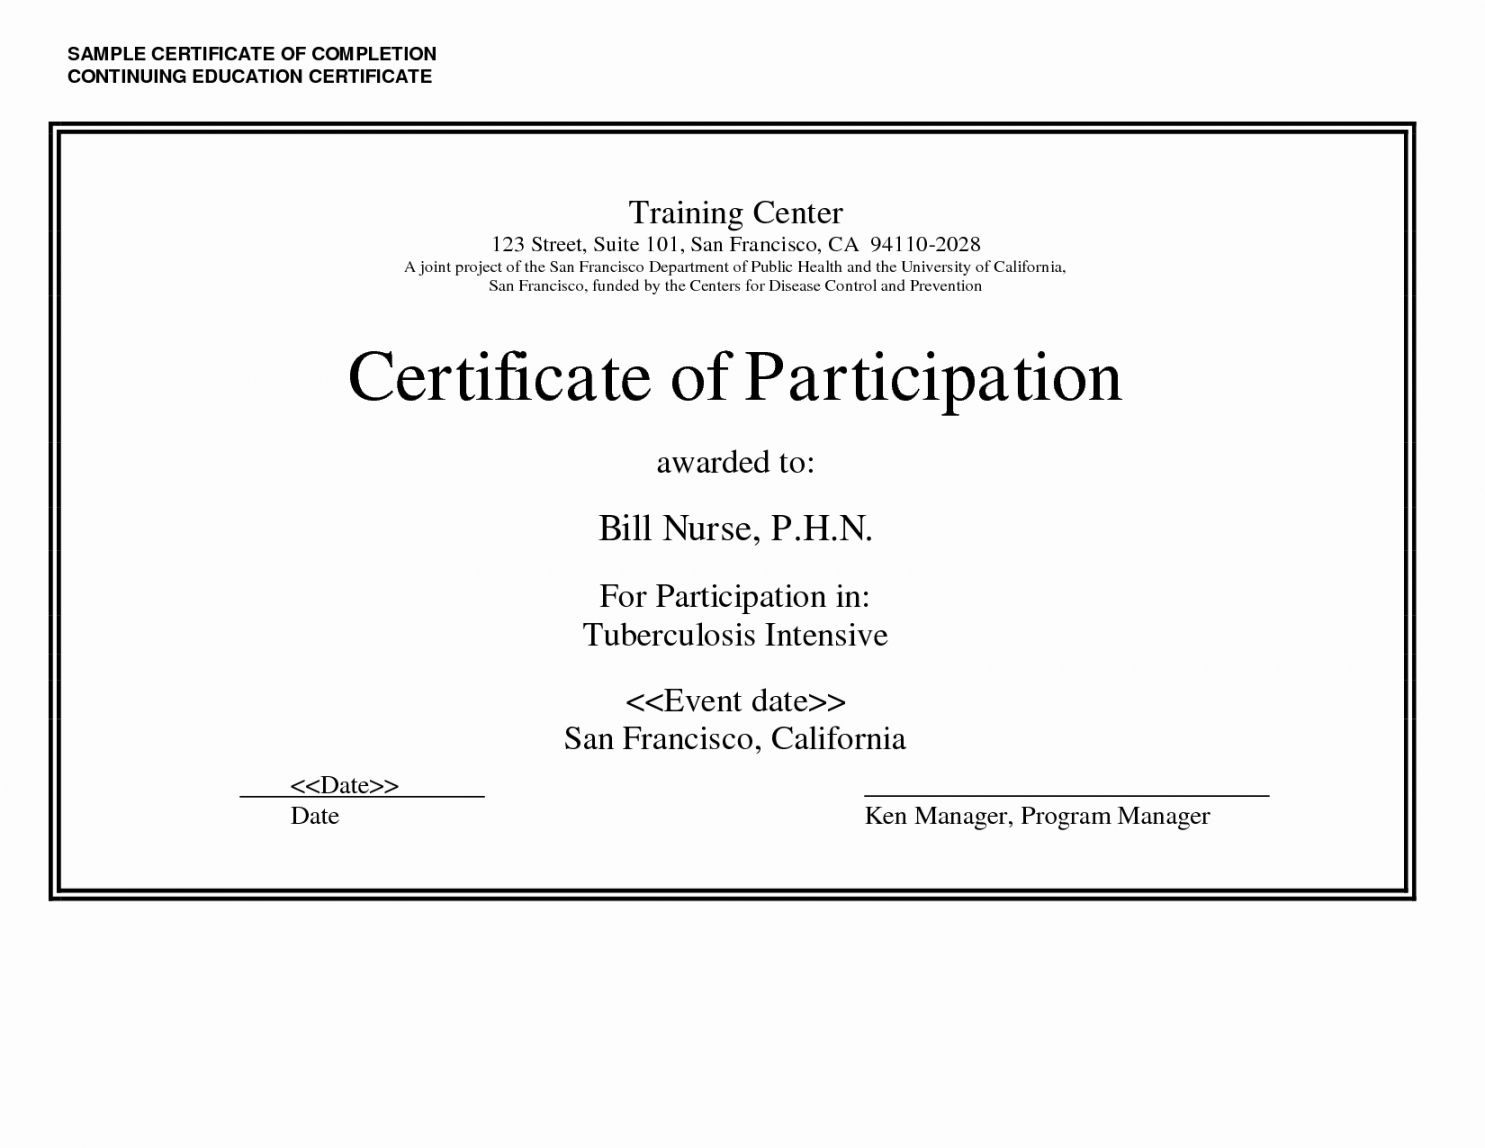 Browse Our Sample Of Continuing Education Certificate Template Education Certificate Certificate Templates Continuing Education Ceu certificate of attendance template